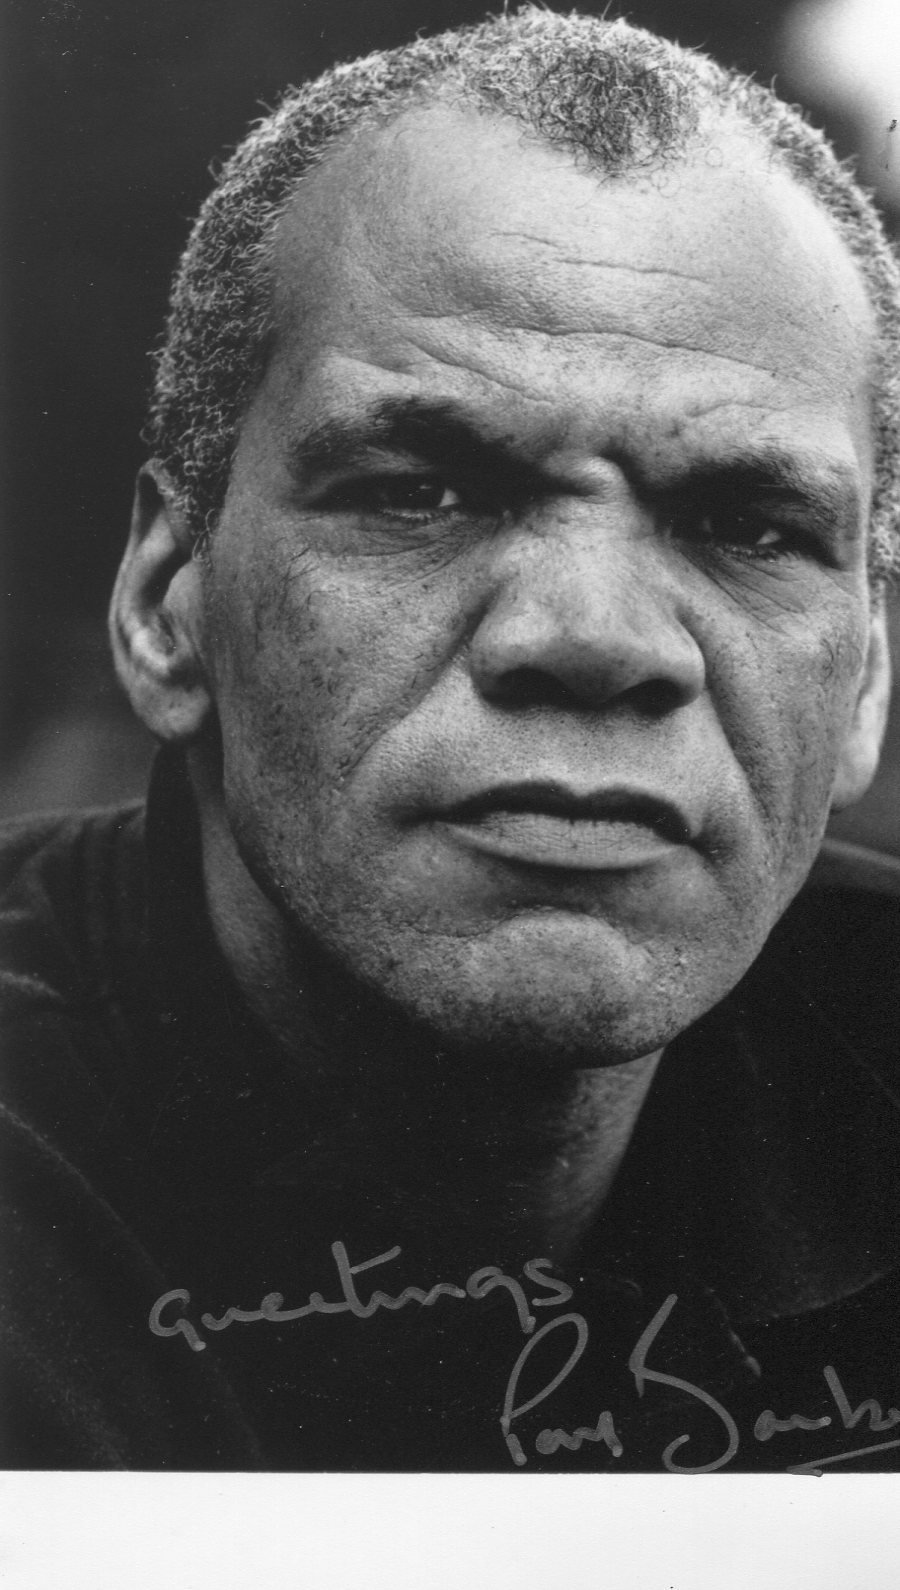 Paul Barber (born 1951)